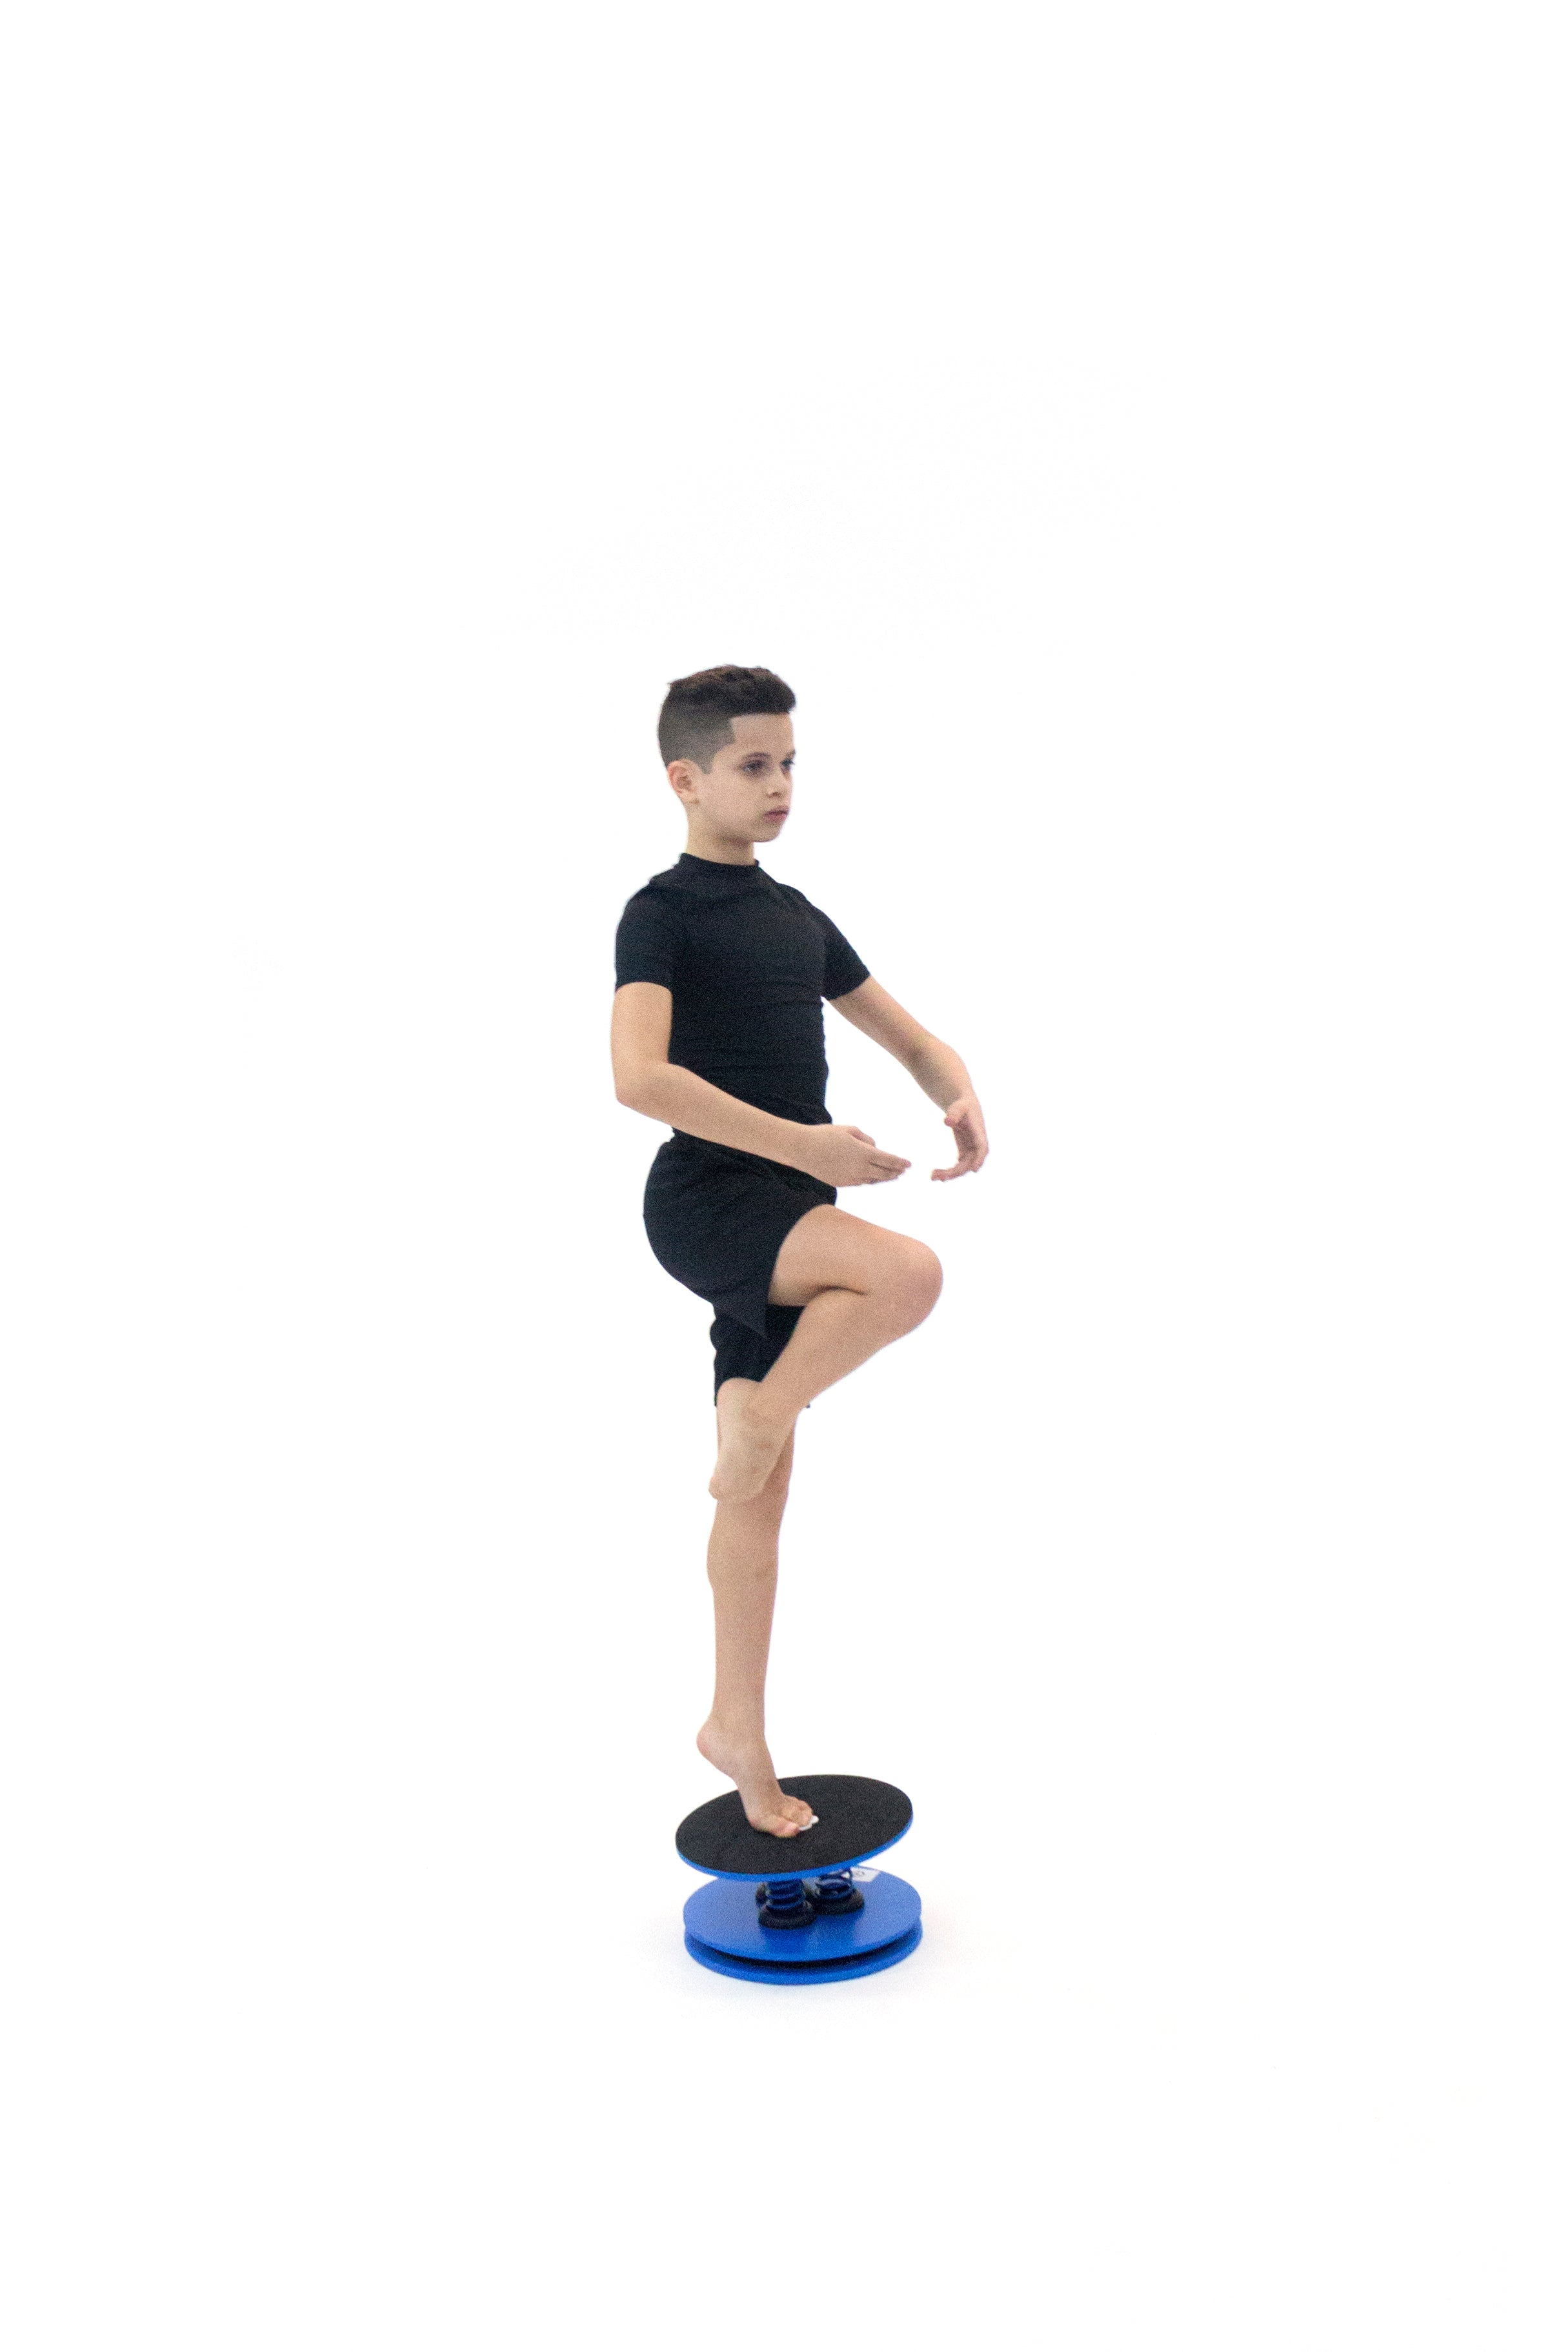 SpringCore Balance Premium Level 2 - Limit 130 pounds